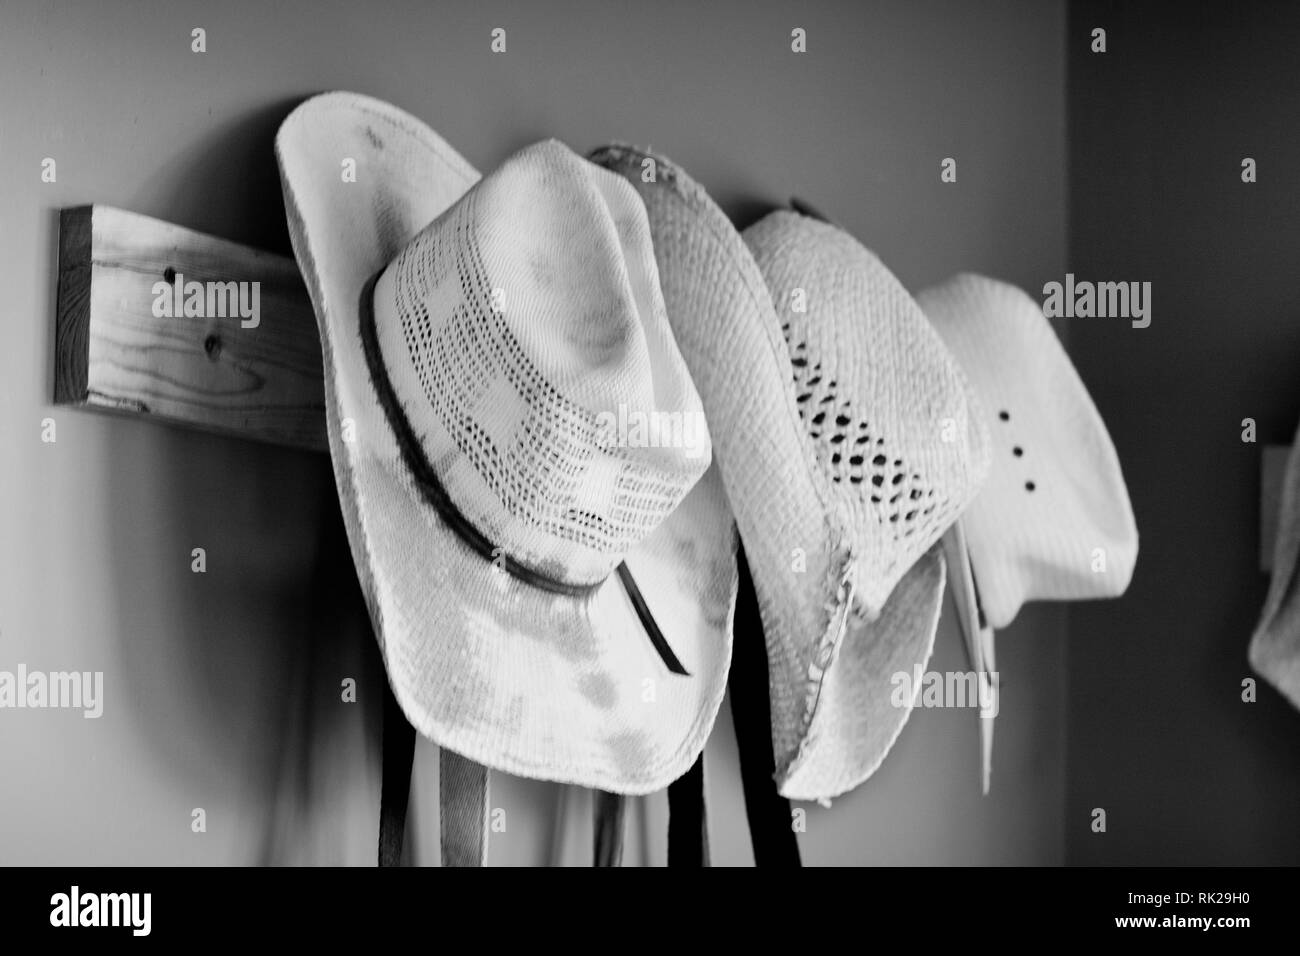 straw hats hanging on wall - Stock Image